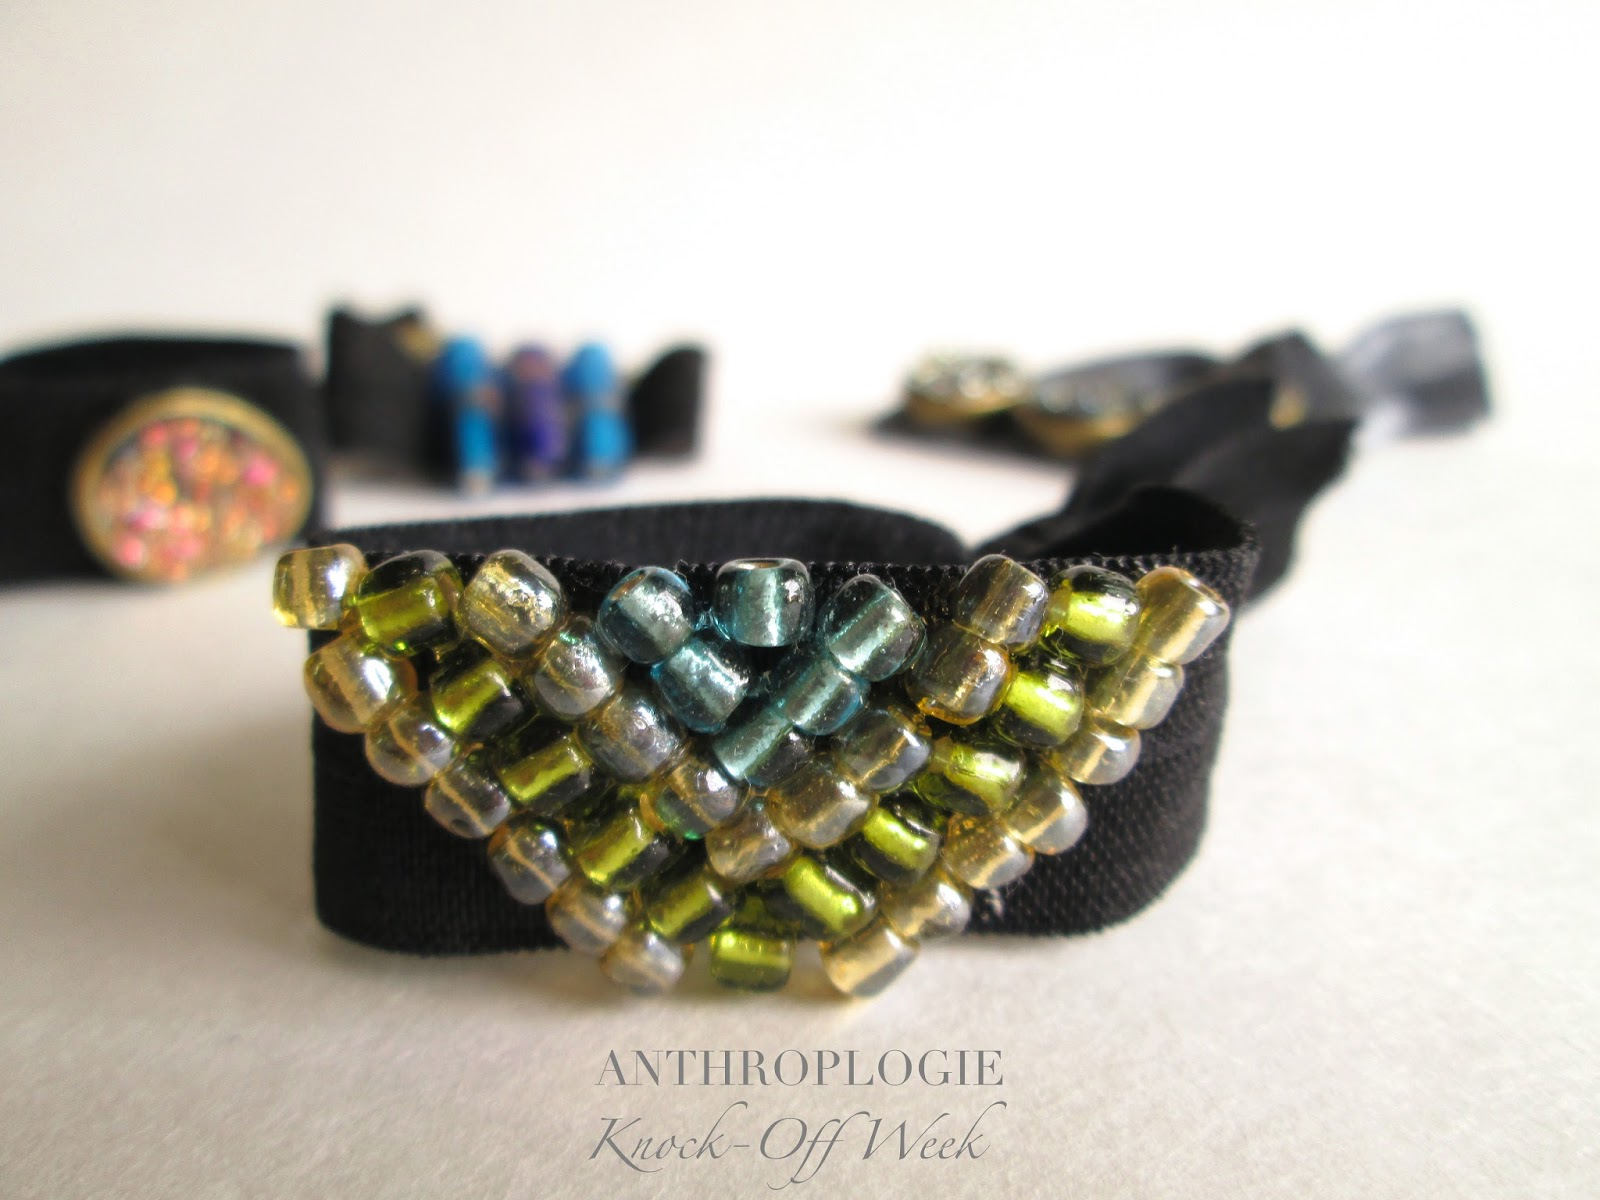 Anthropologie Crystalline Hair Ties DIY